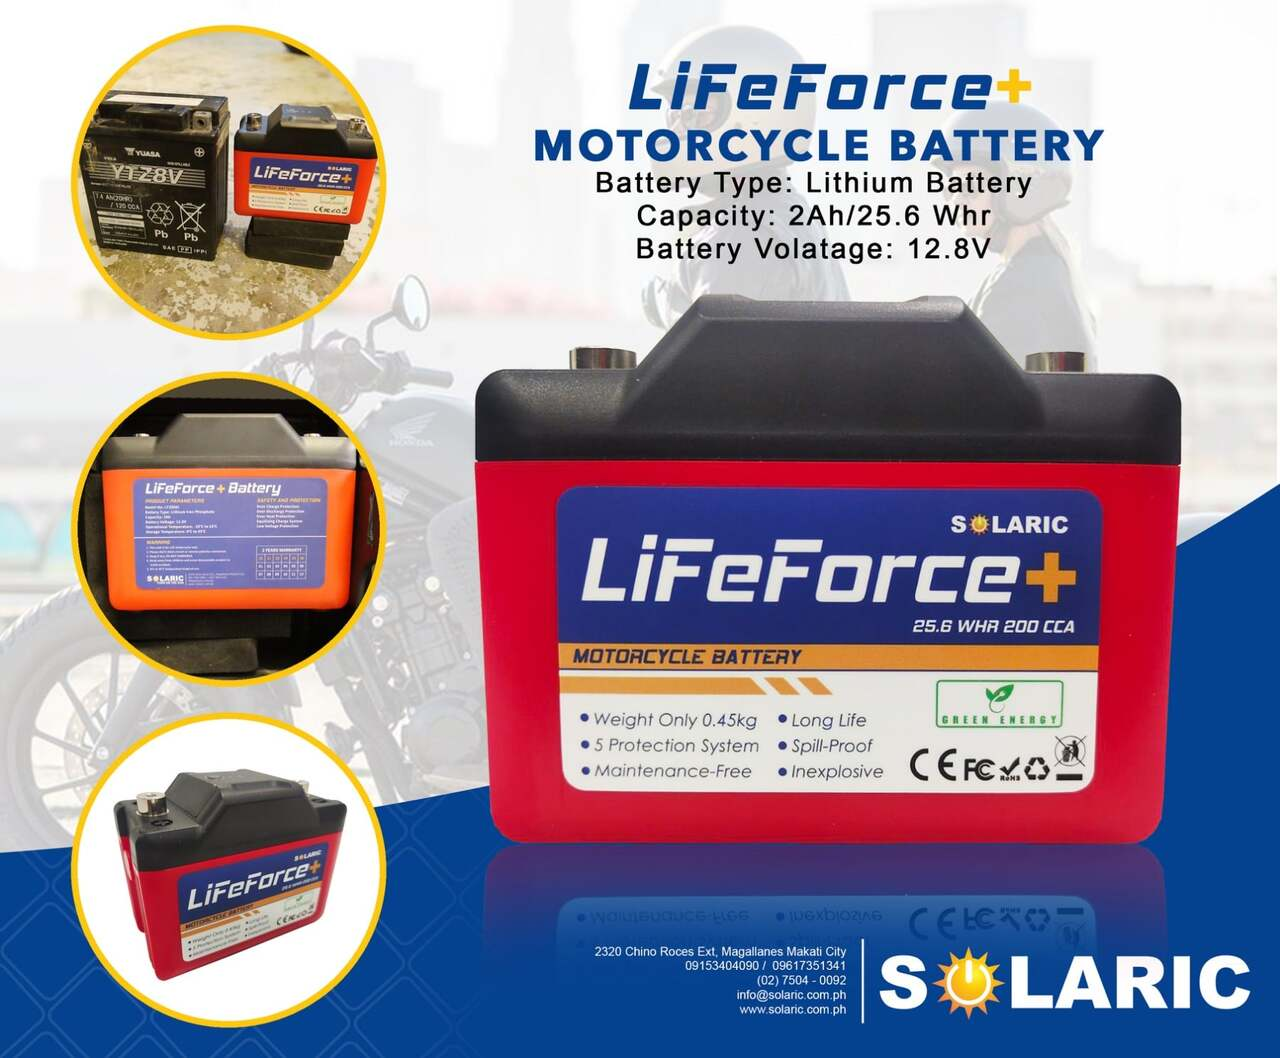 The LiFe-Force Battery